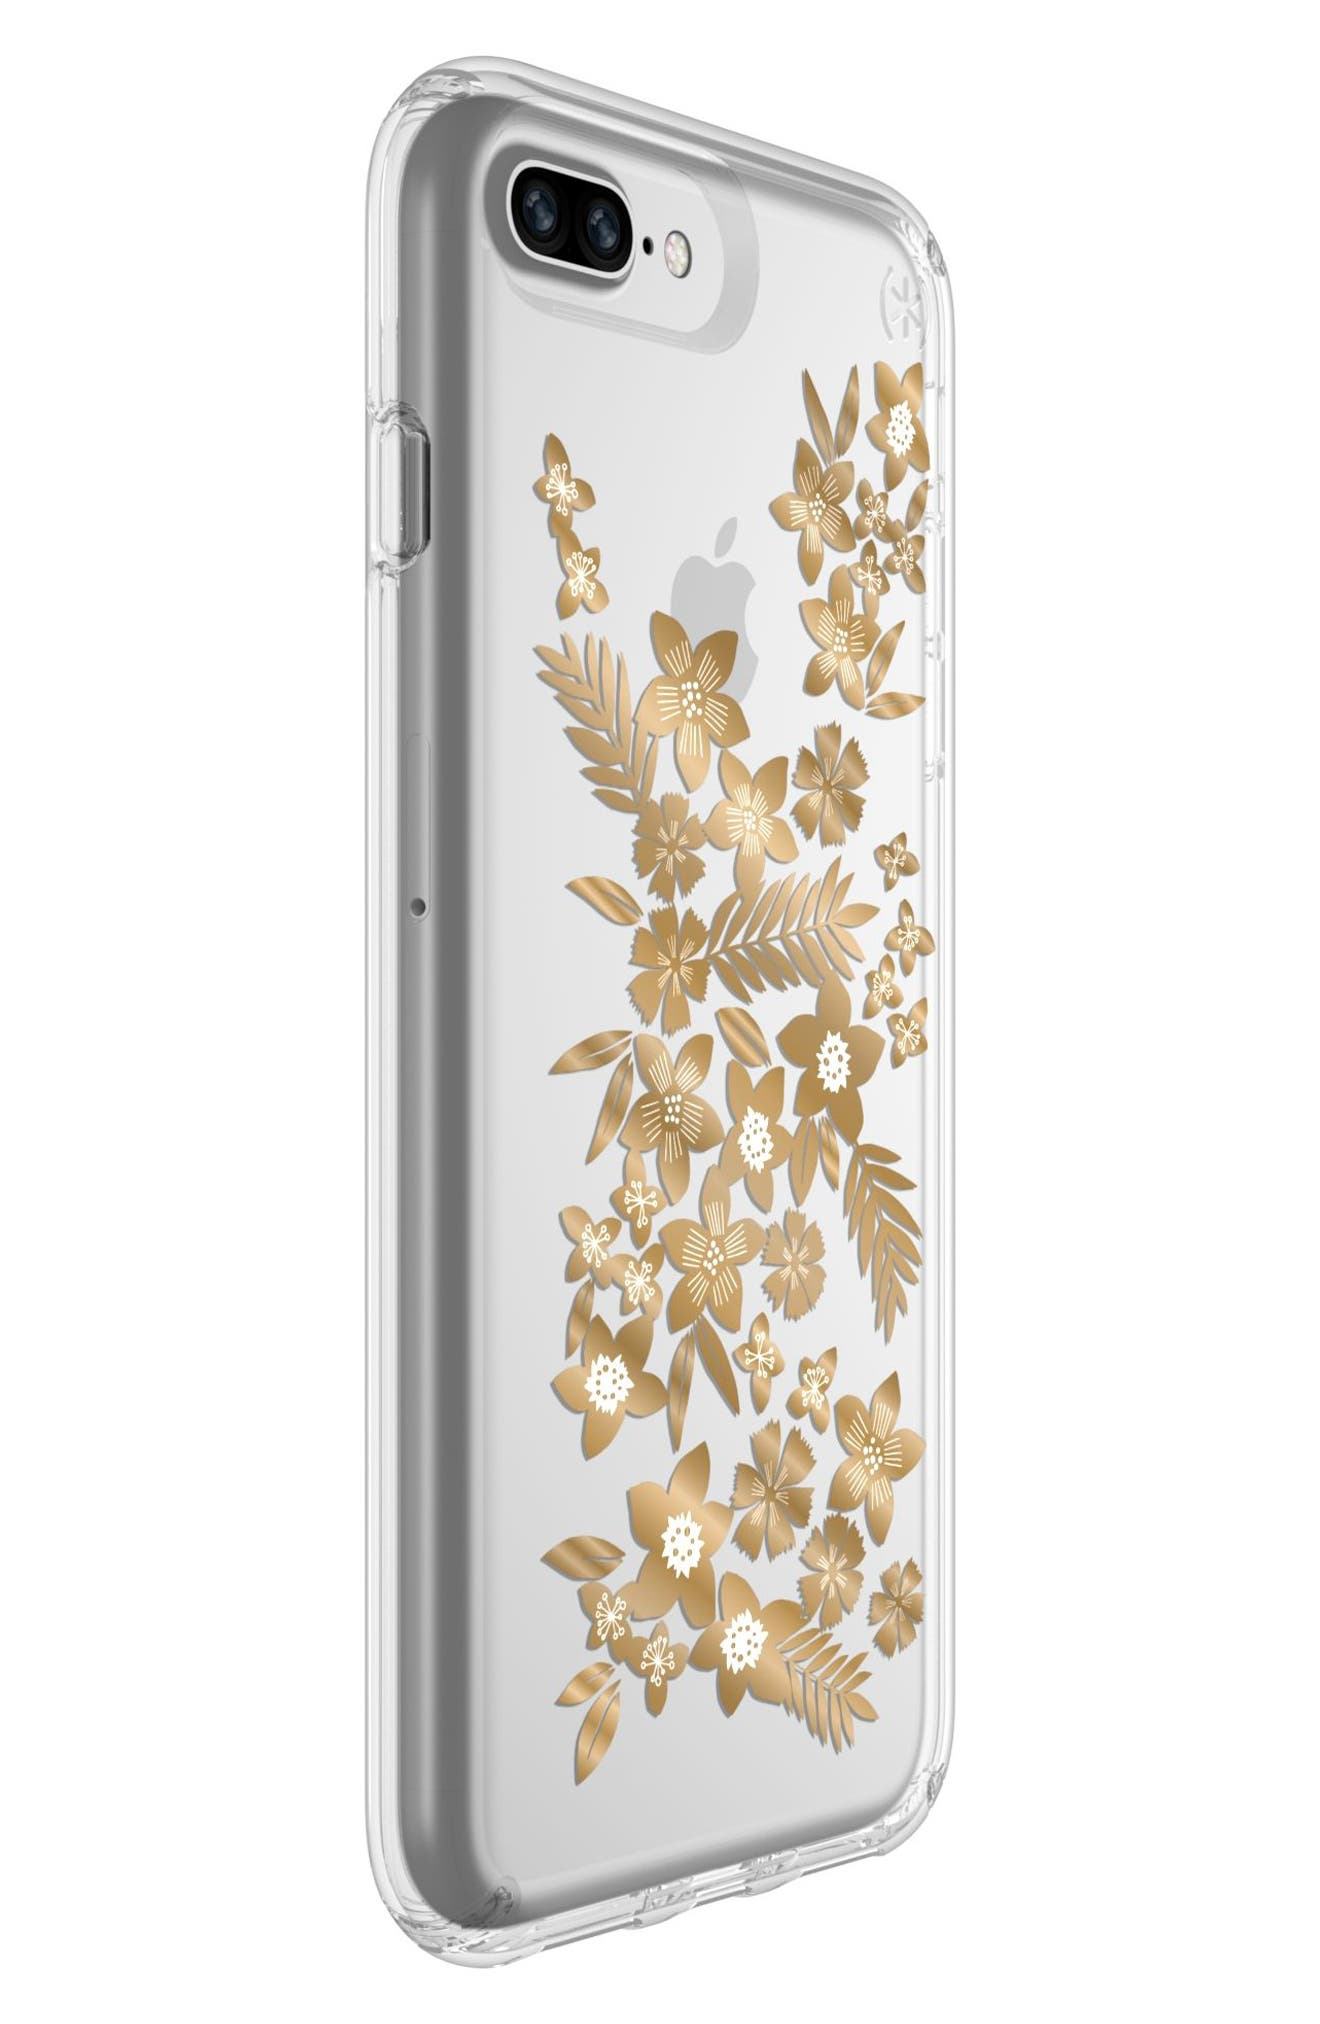 Floral iPhone 6 Plus/6s Plus/7 Plus/8 Plus Case,                             Alternate thumbnail 6, color,                             SHIMMER FLORAL METALLIC/ CLEAR